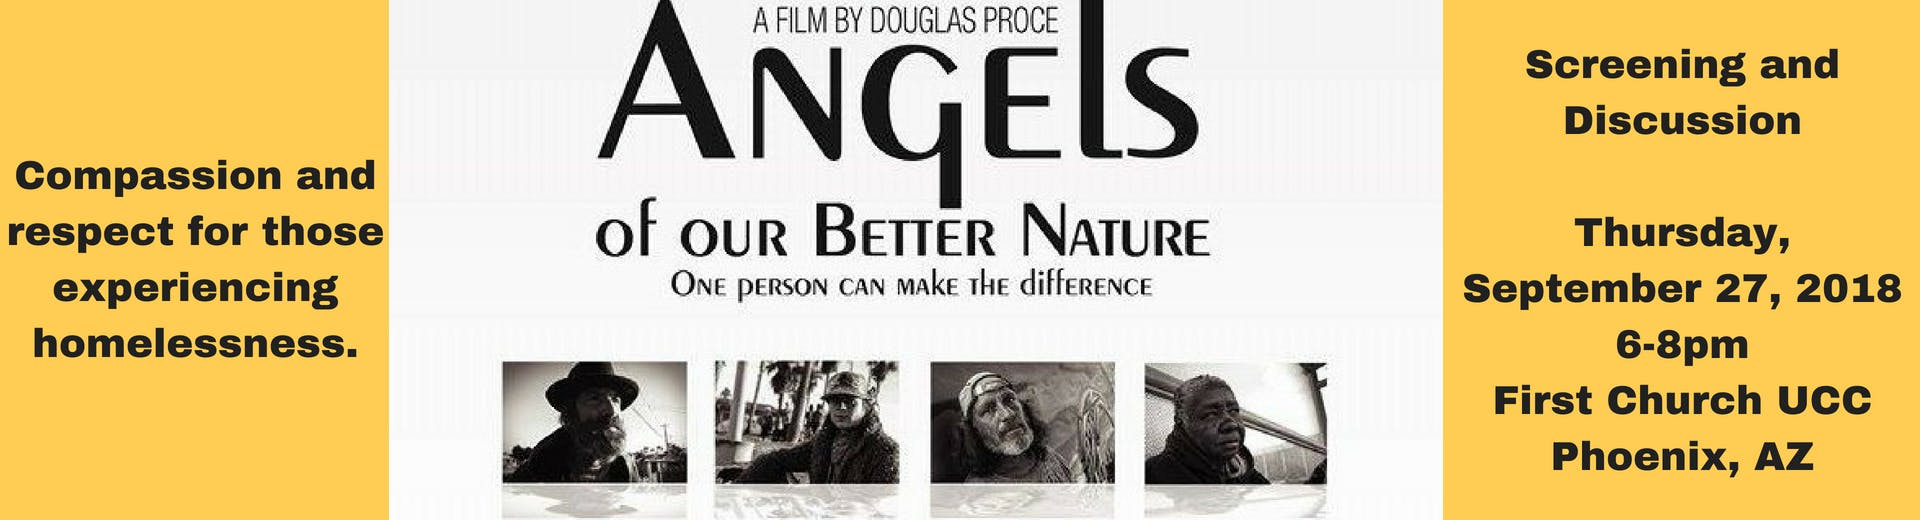 Angels of Our Better Nature Screening